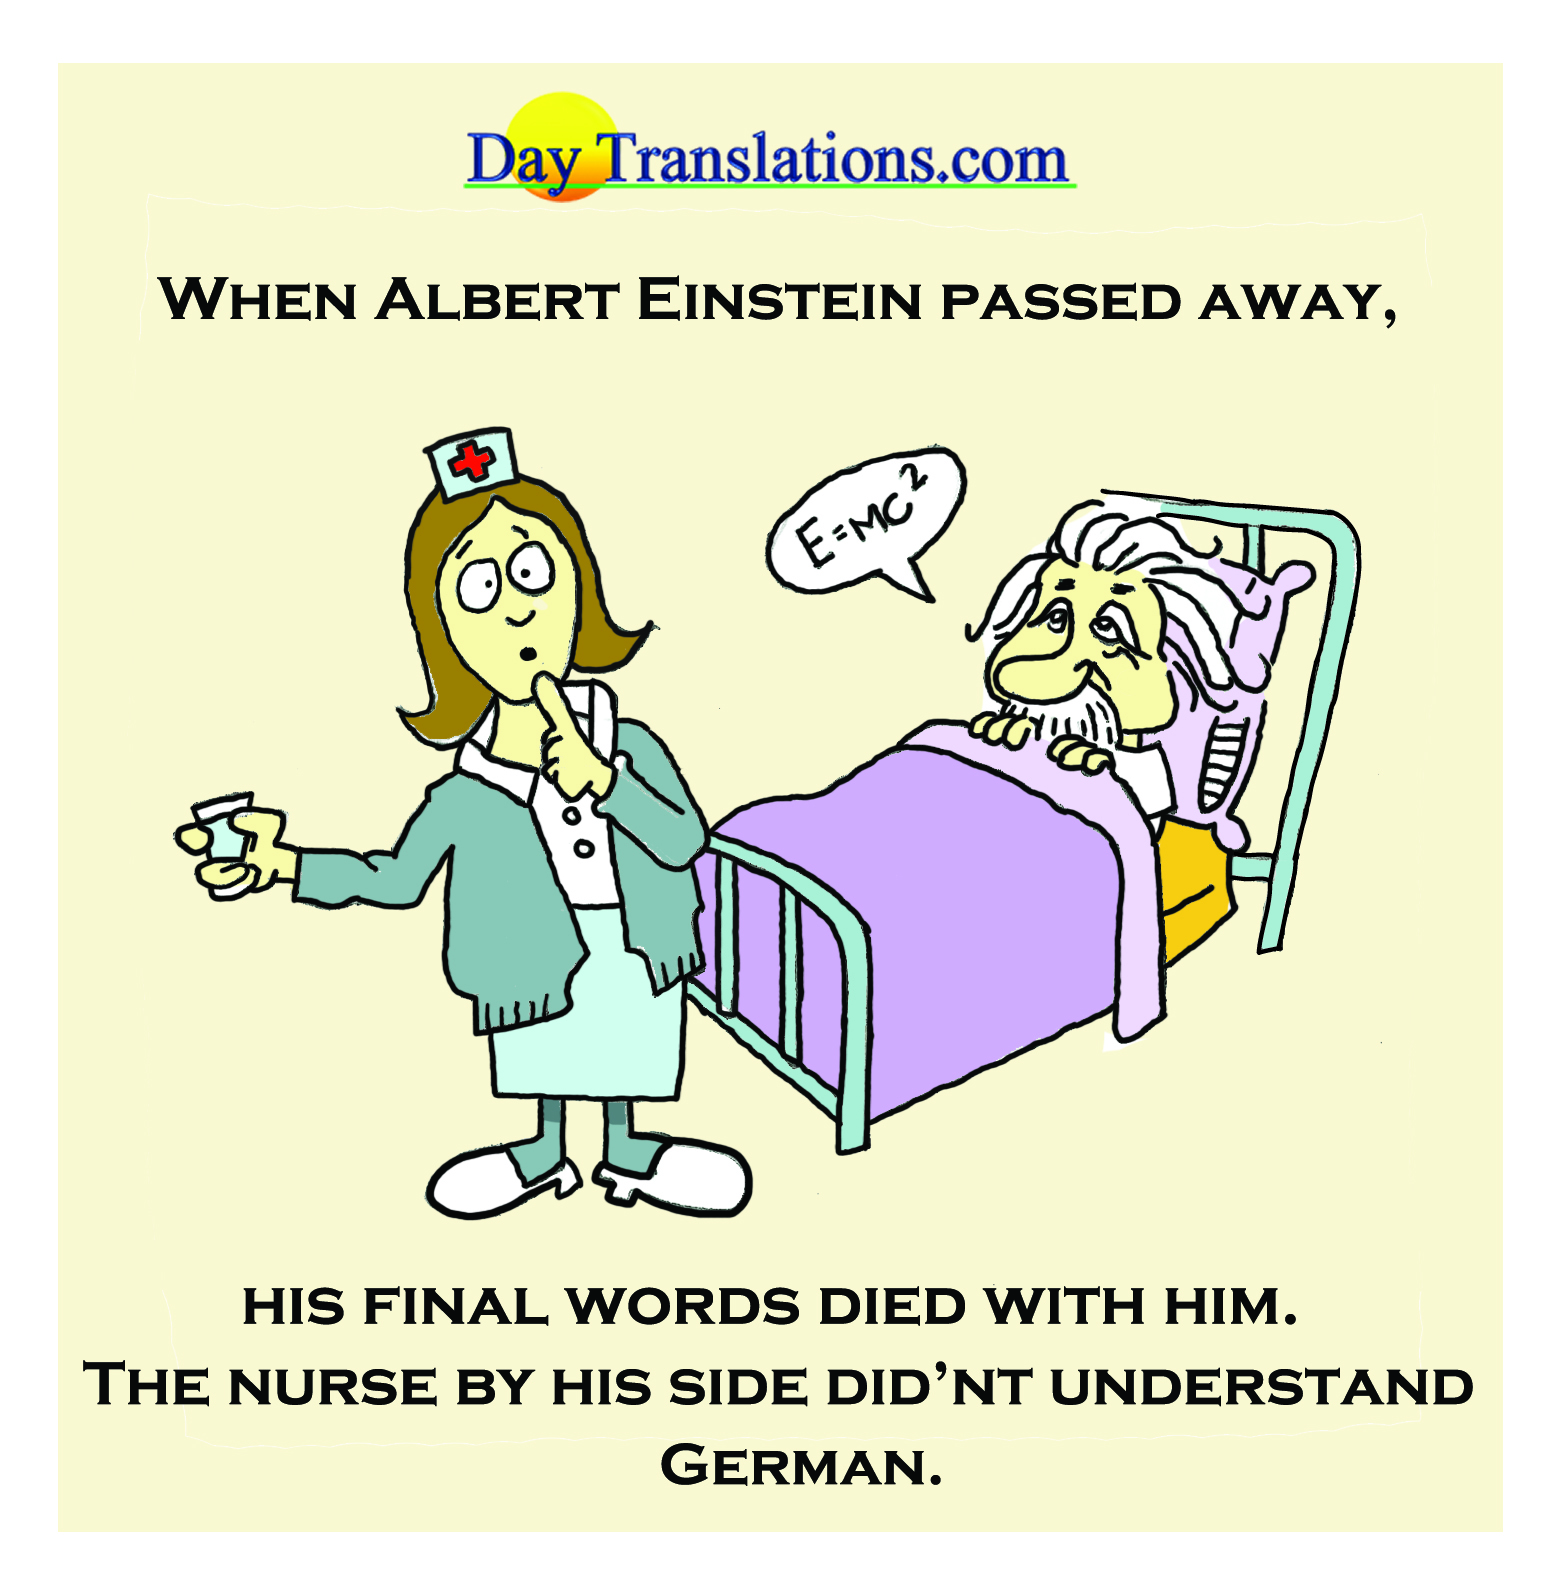 Day News - Einstein's Last Words